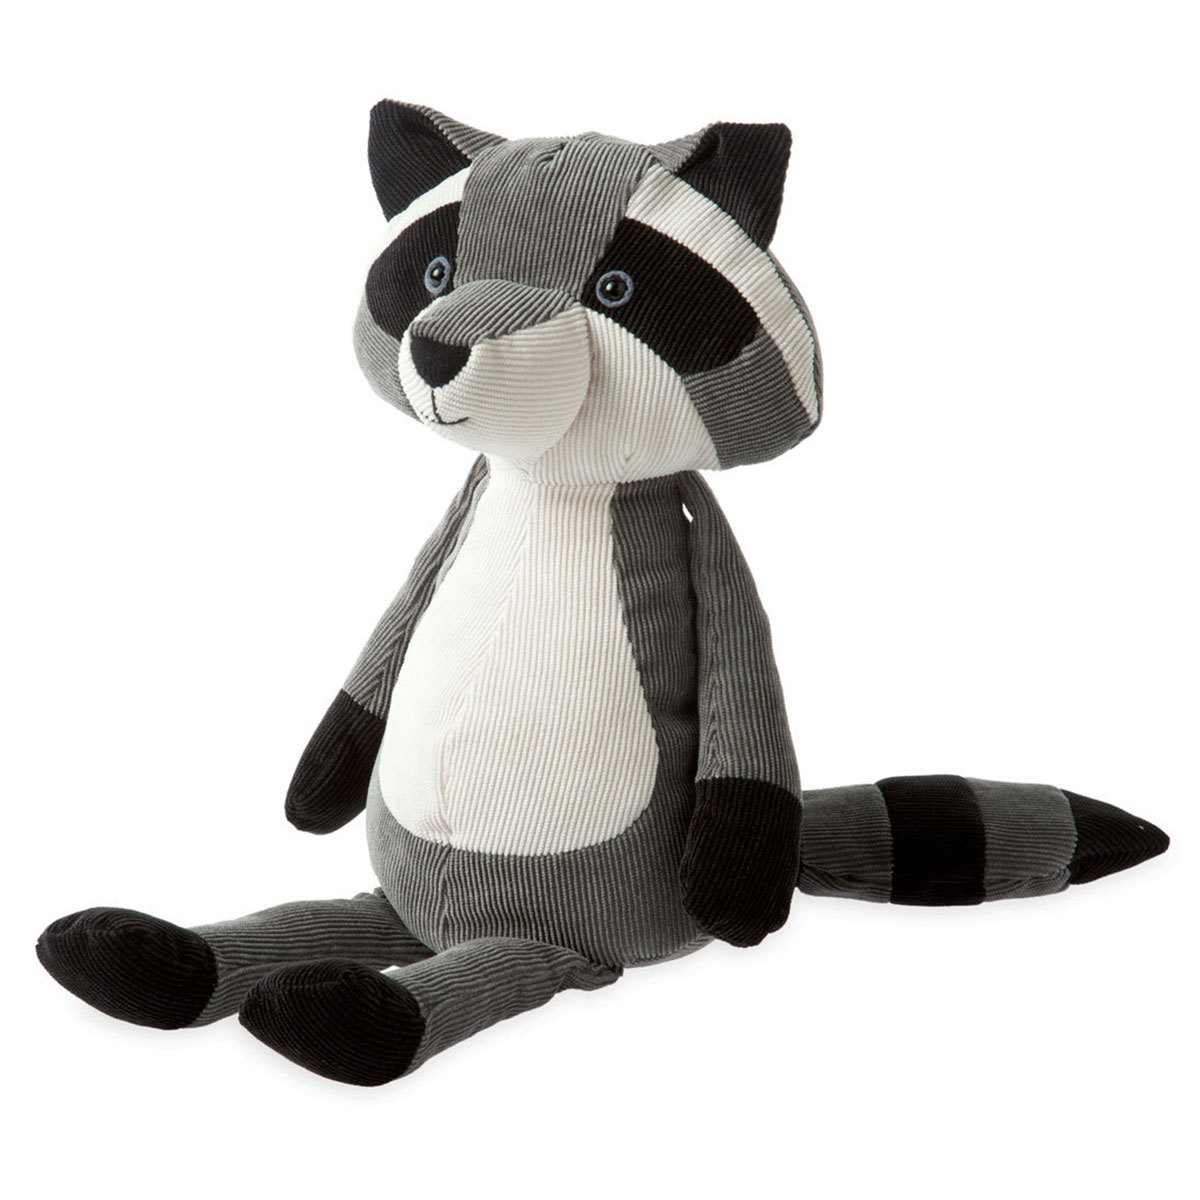 Peluche Folksy Foresters Raton-Laveur Folksy Foresters Raton-Laveur